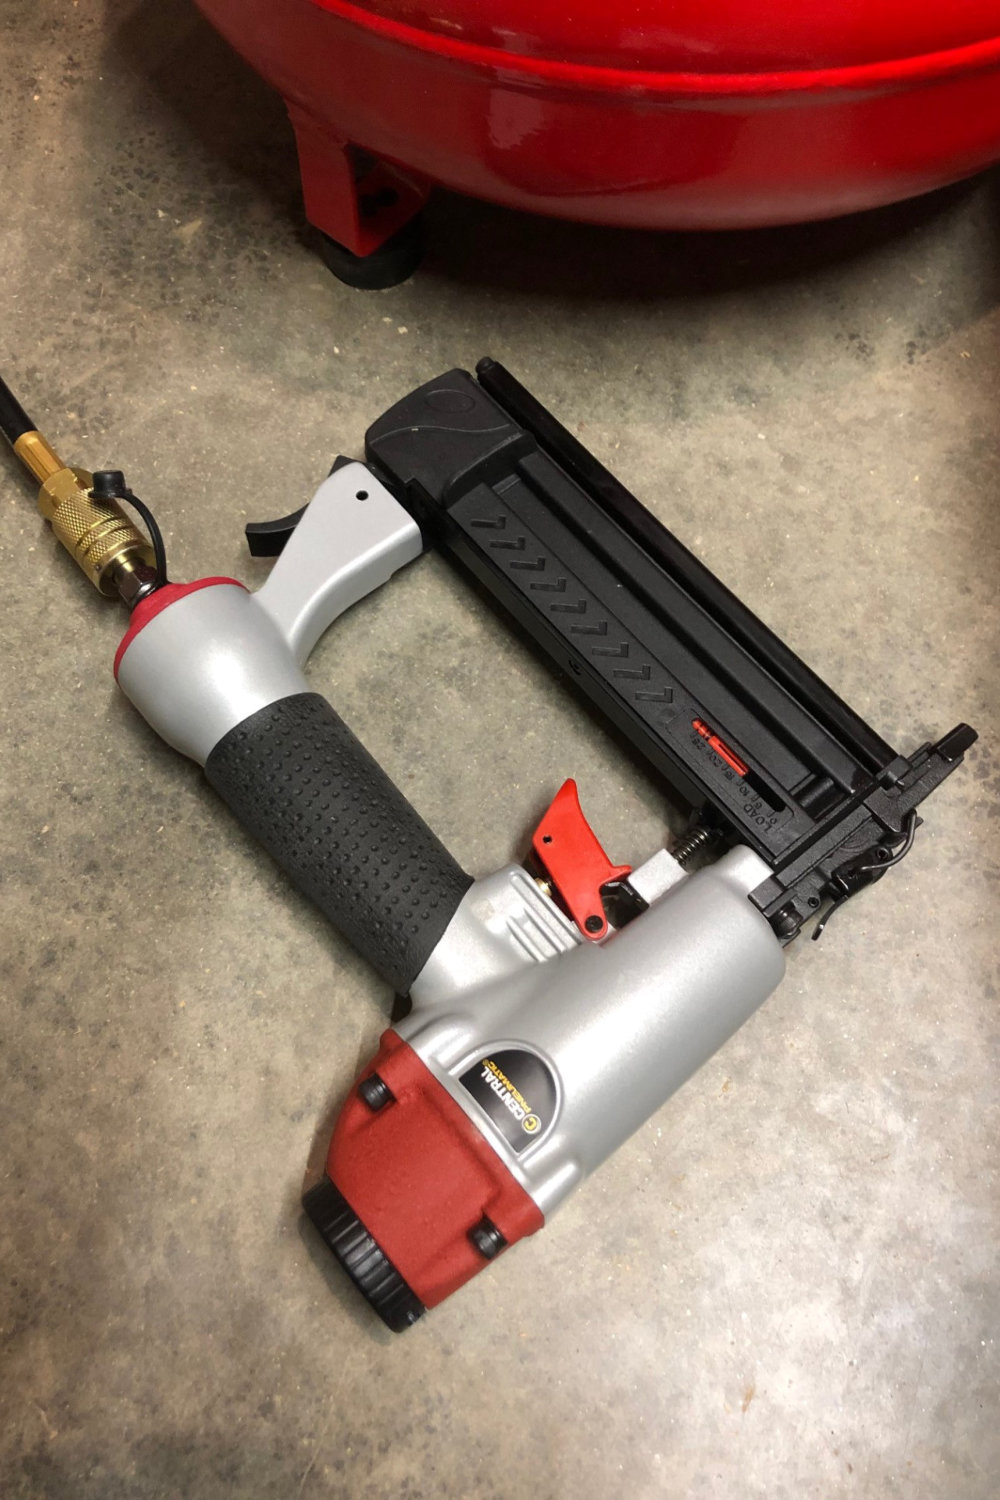 Product Review: The Central Pneumatic 2-in-1 Air Nailer/Stapler